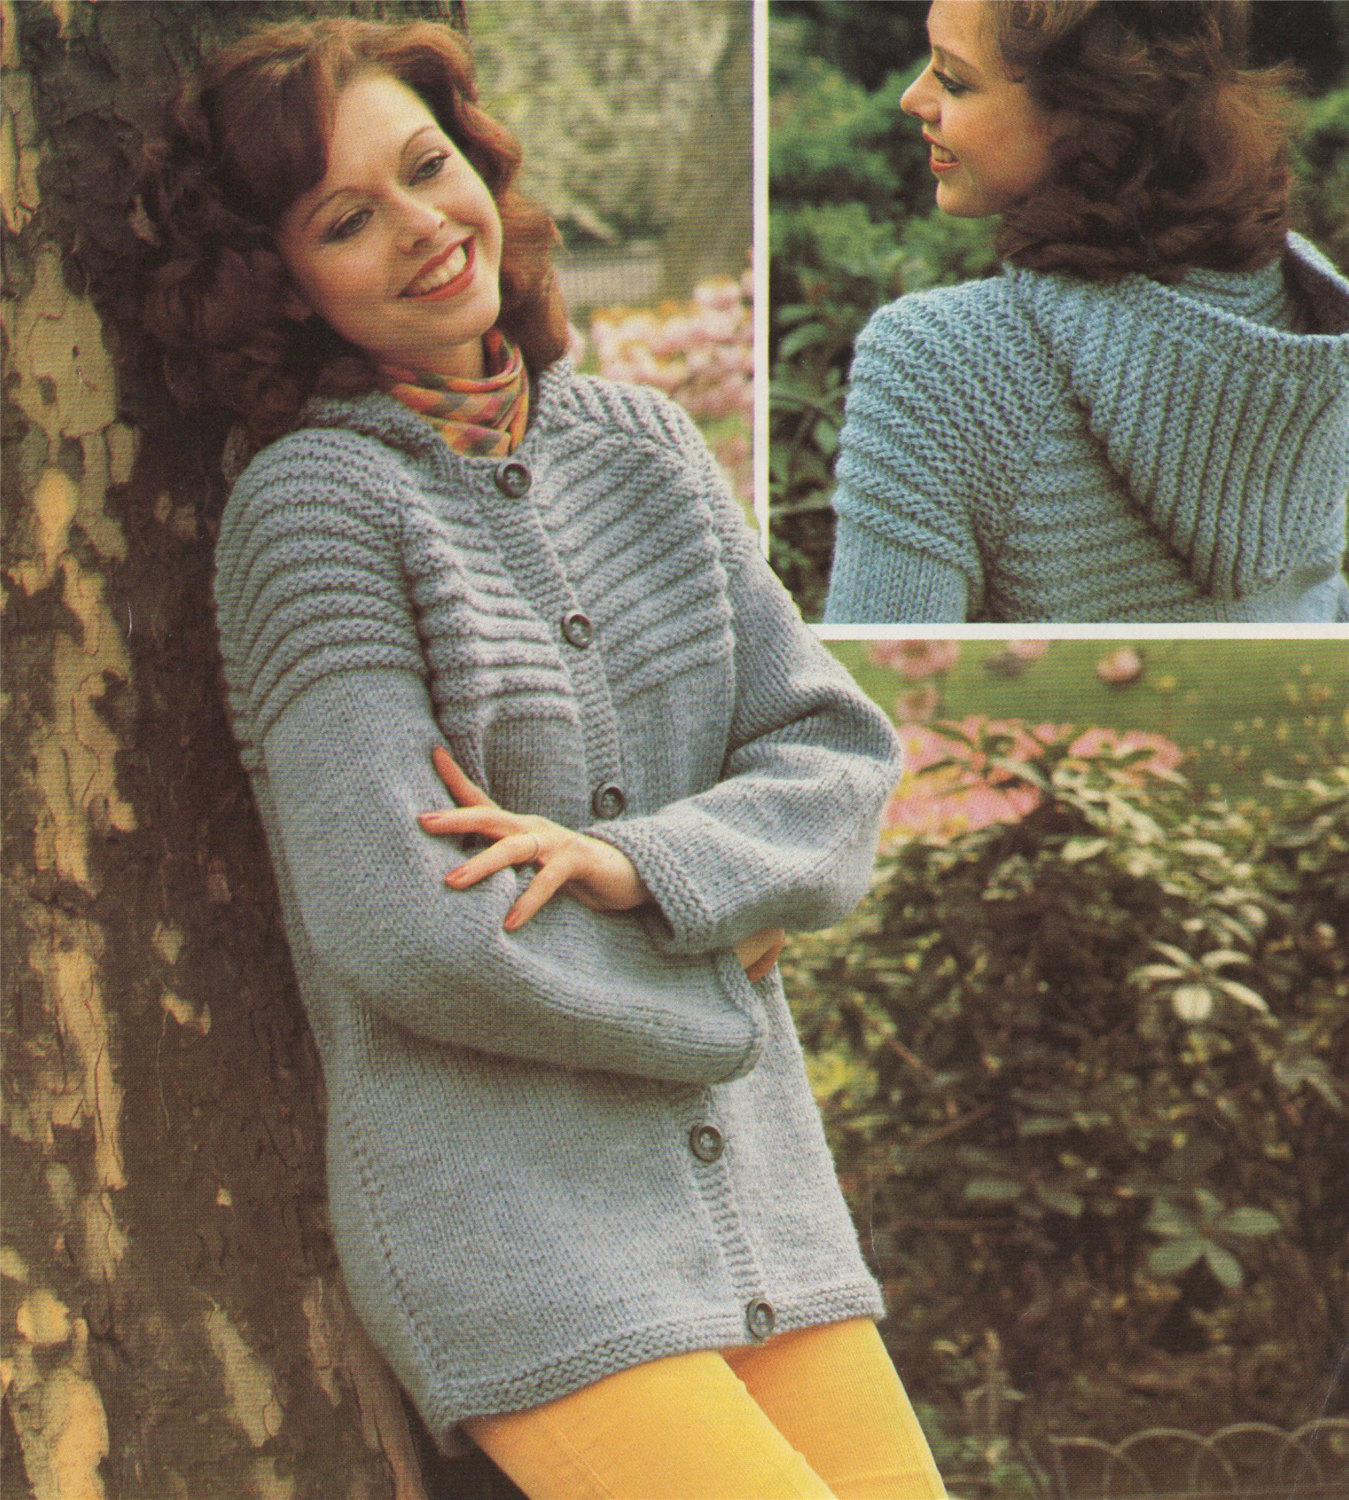 Knitting Patterns For Women Womens Hooded Jacket Knitting Pattern Pdf Ladies 32 34 36 38 And 40 Inch Chest Hoodie Cardigan Vintage Knitting Patterns For Women